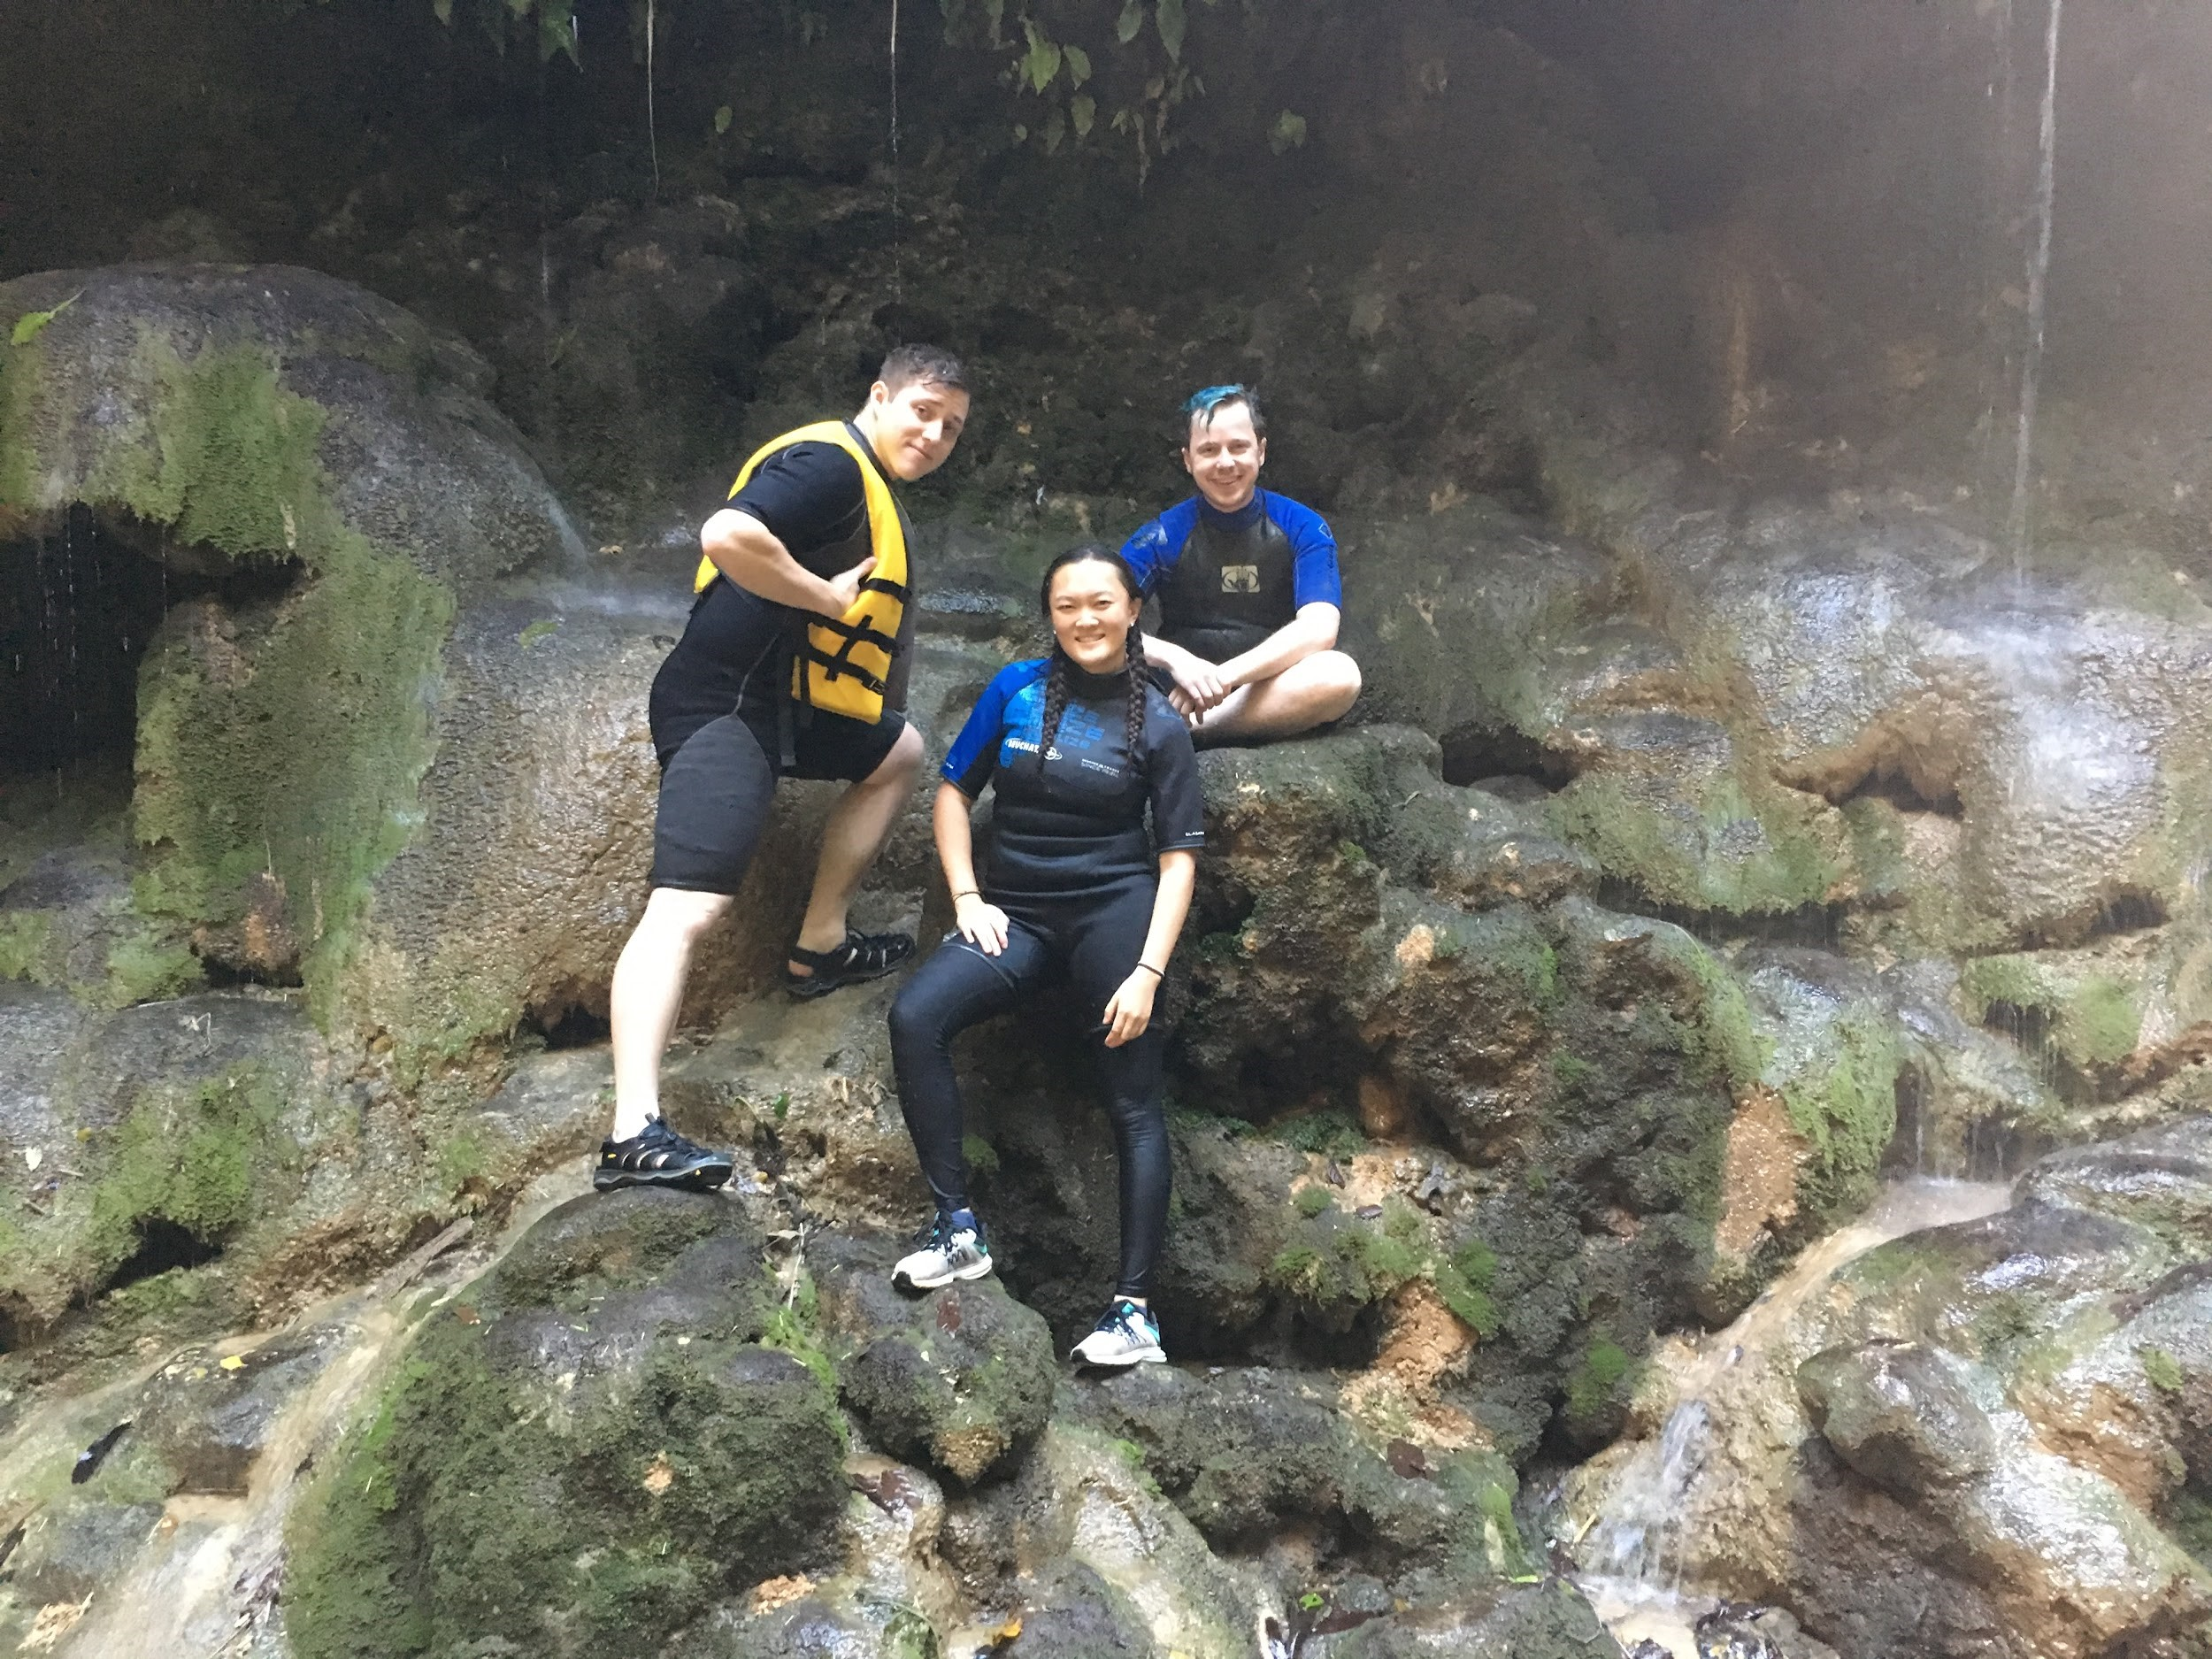 Group Picture outside natural spring waterfall